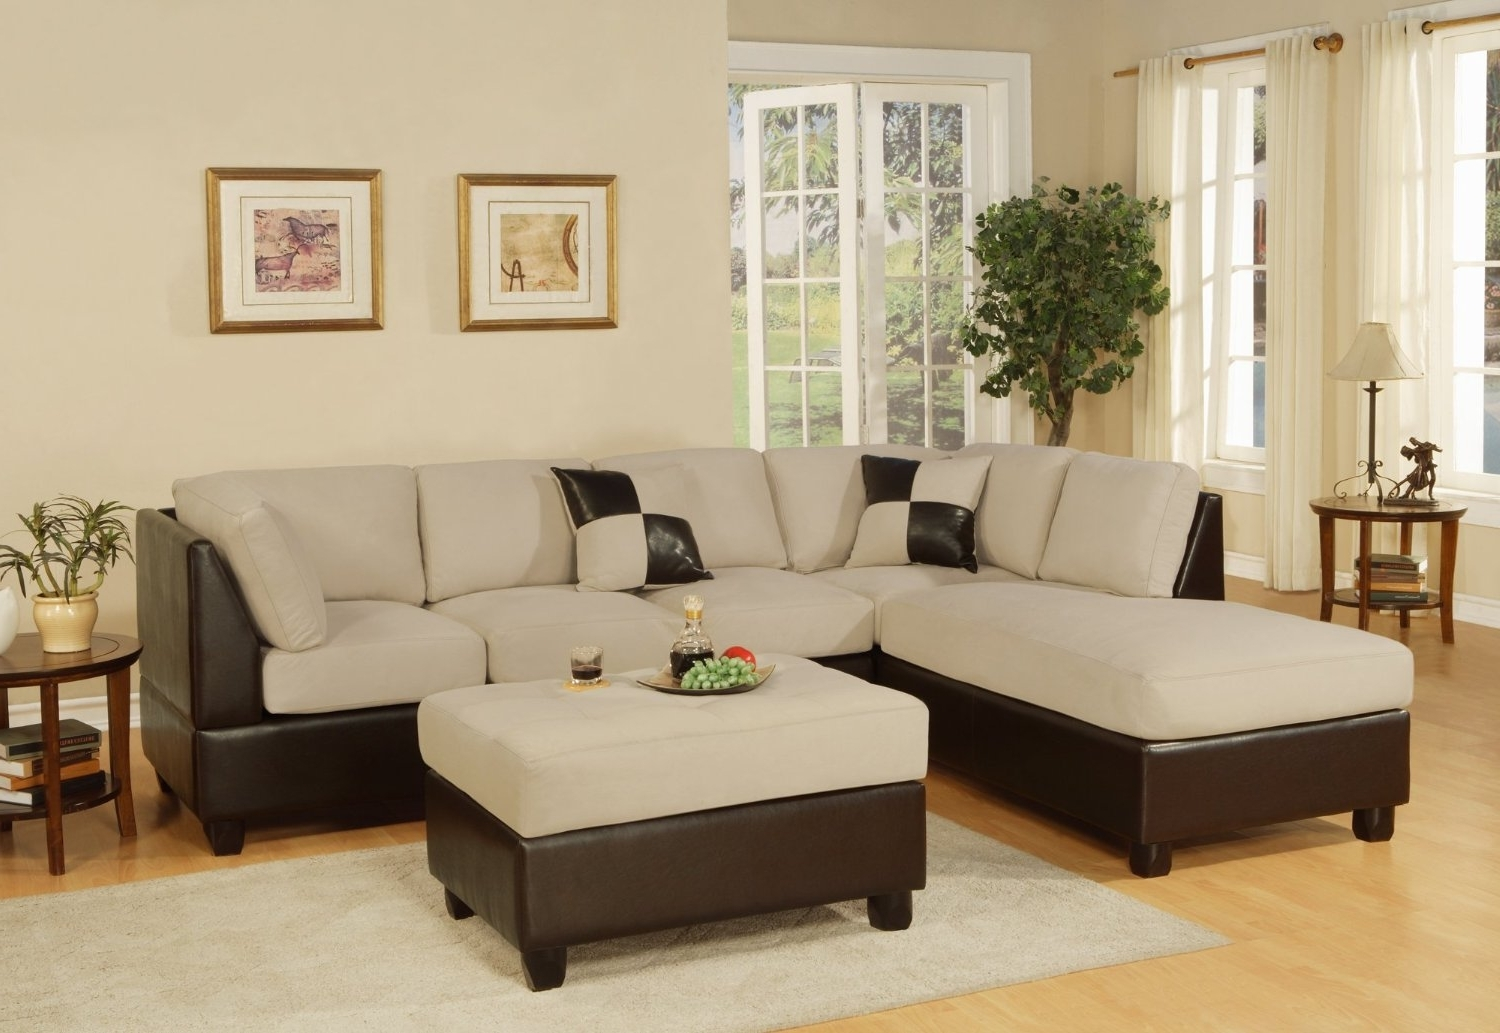 Hawaii Sectional Sofas Inside Fashionable Furniture : Microfiber Costco Sectional Sofa Furnitures (View 7 of 20)